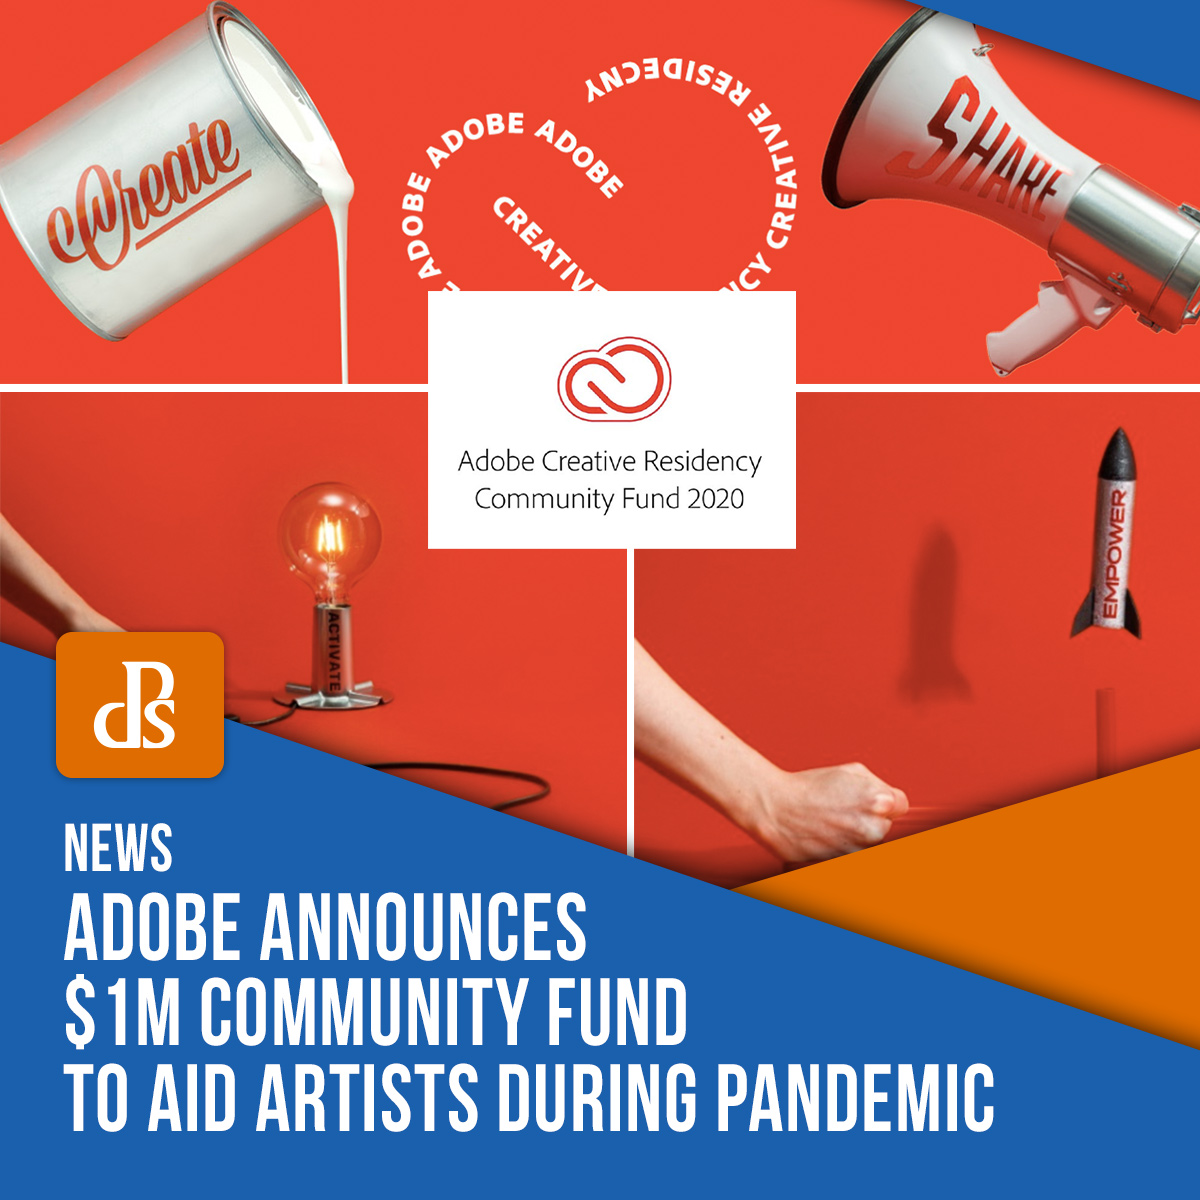 Adobe community fund creative residency